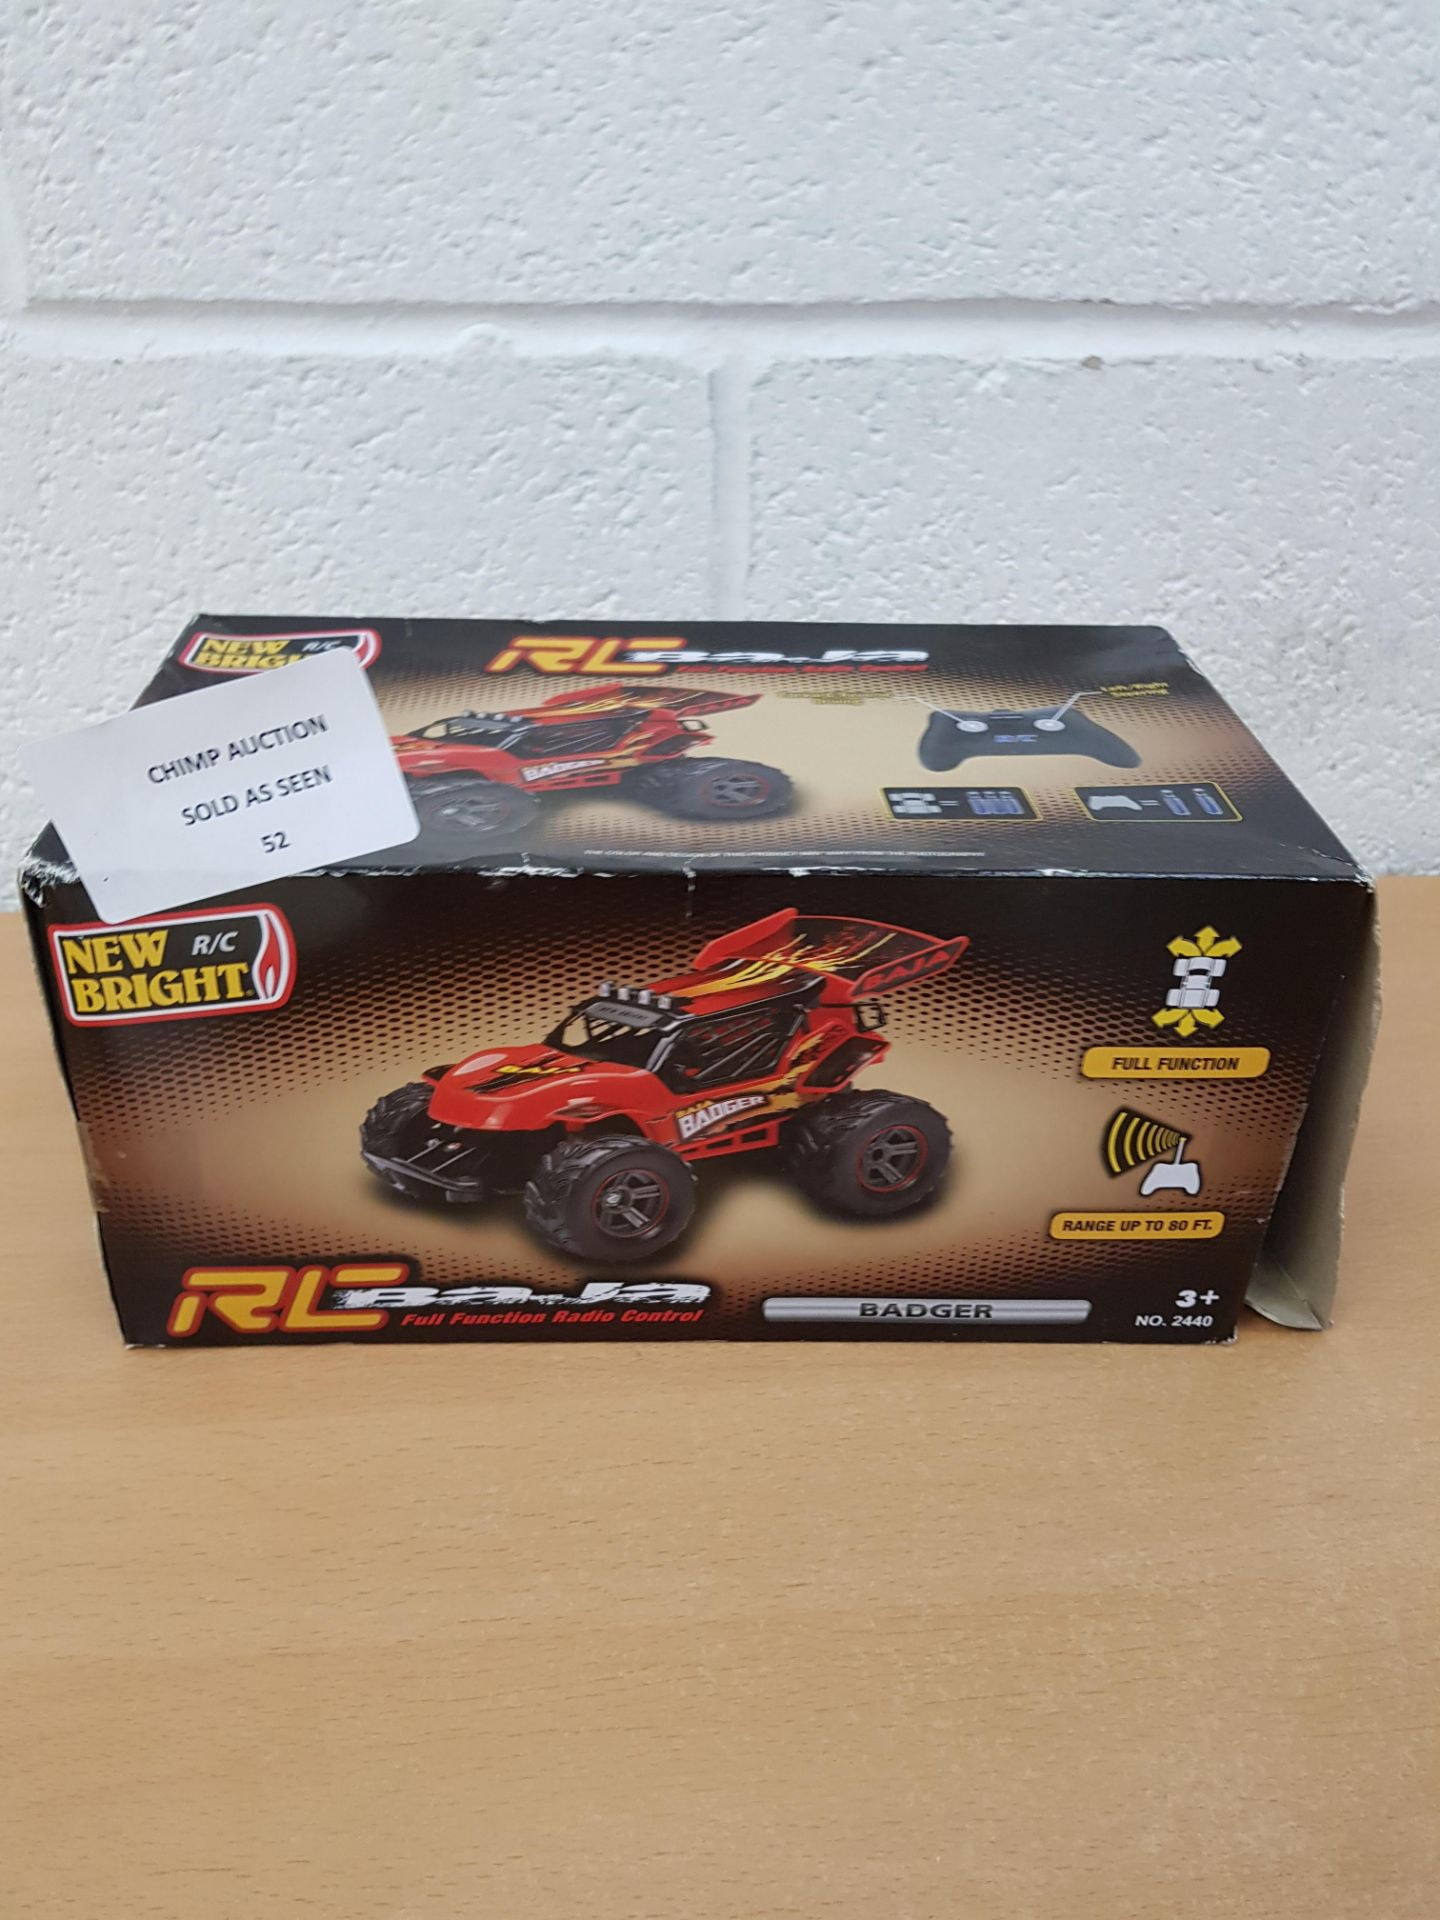 Lot 52 - N-Bright RC Baja remote controlled Truck